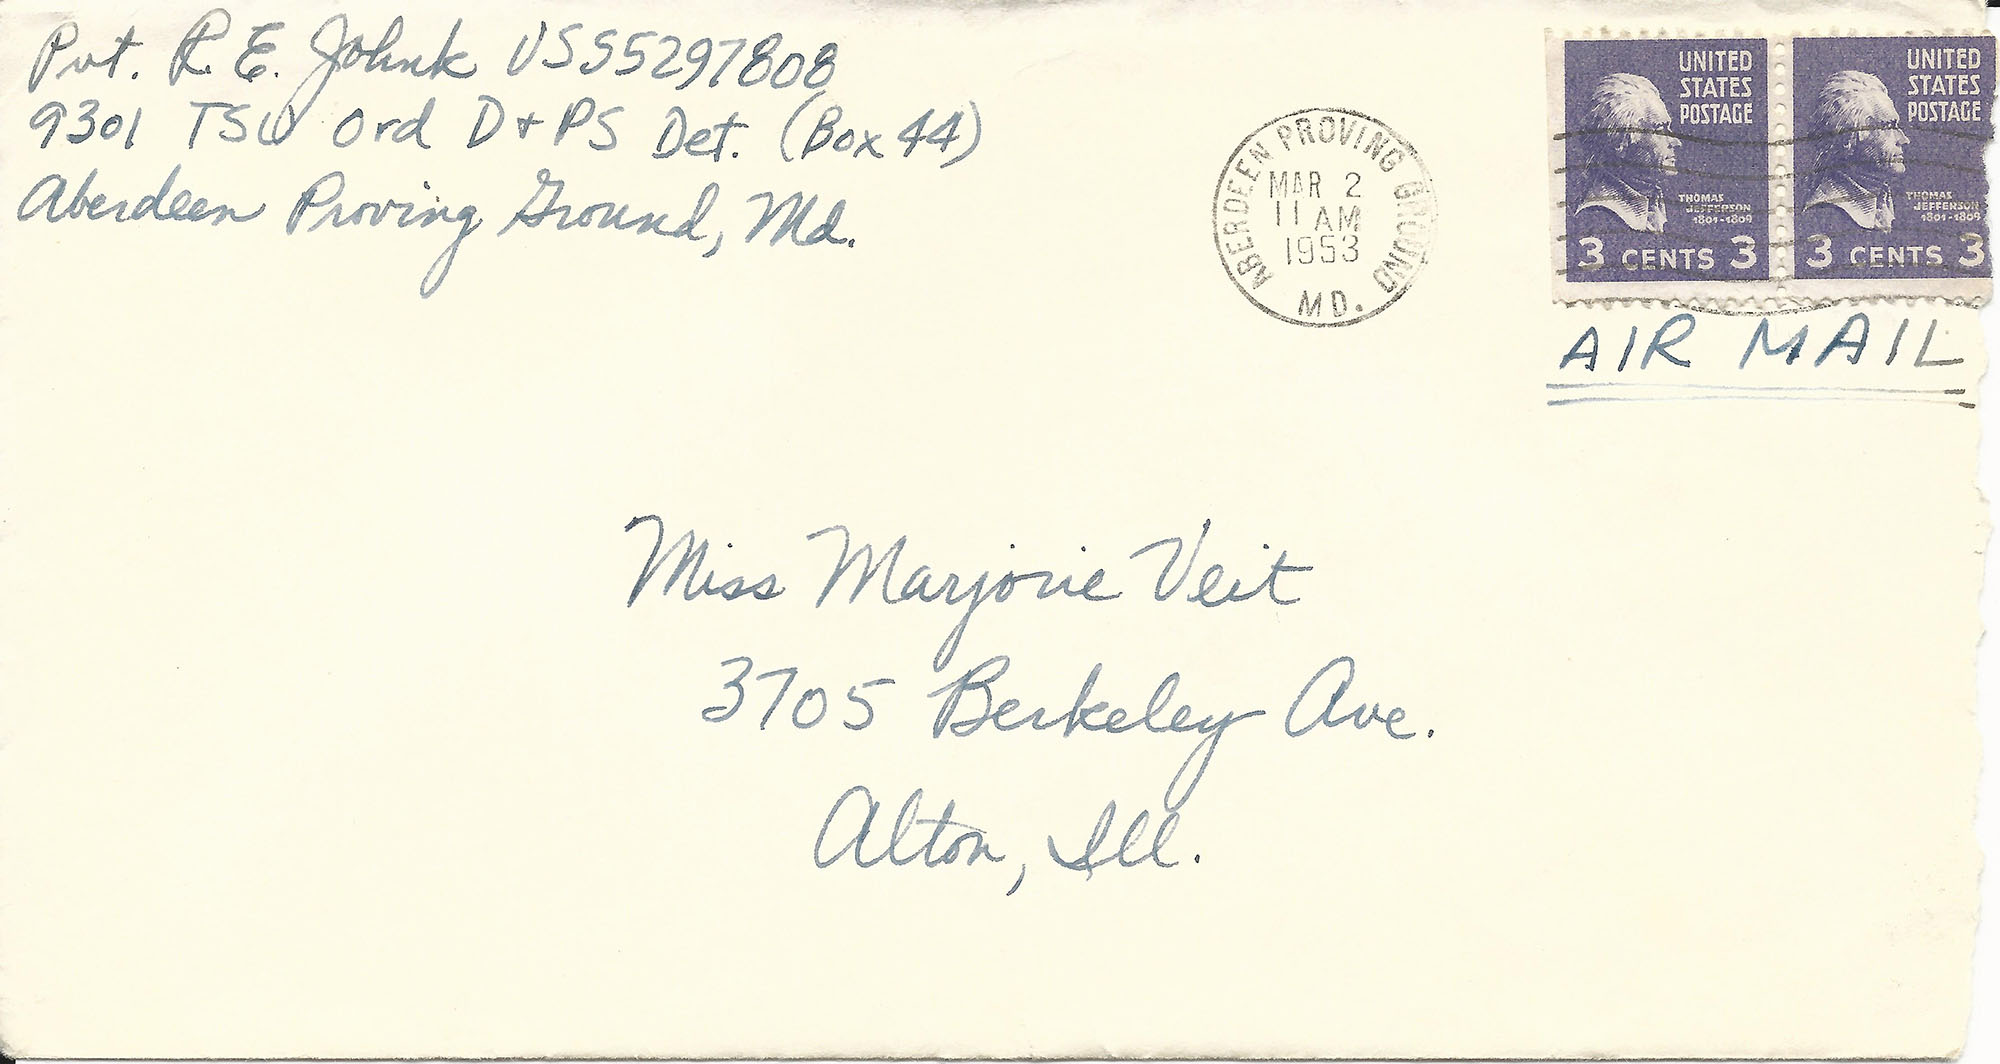 Mar. 1, 1953 (Bob) Envelope